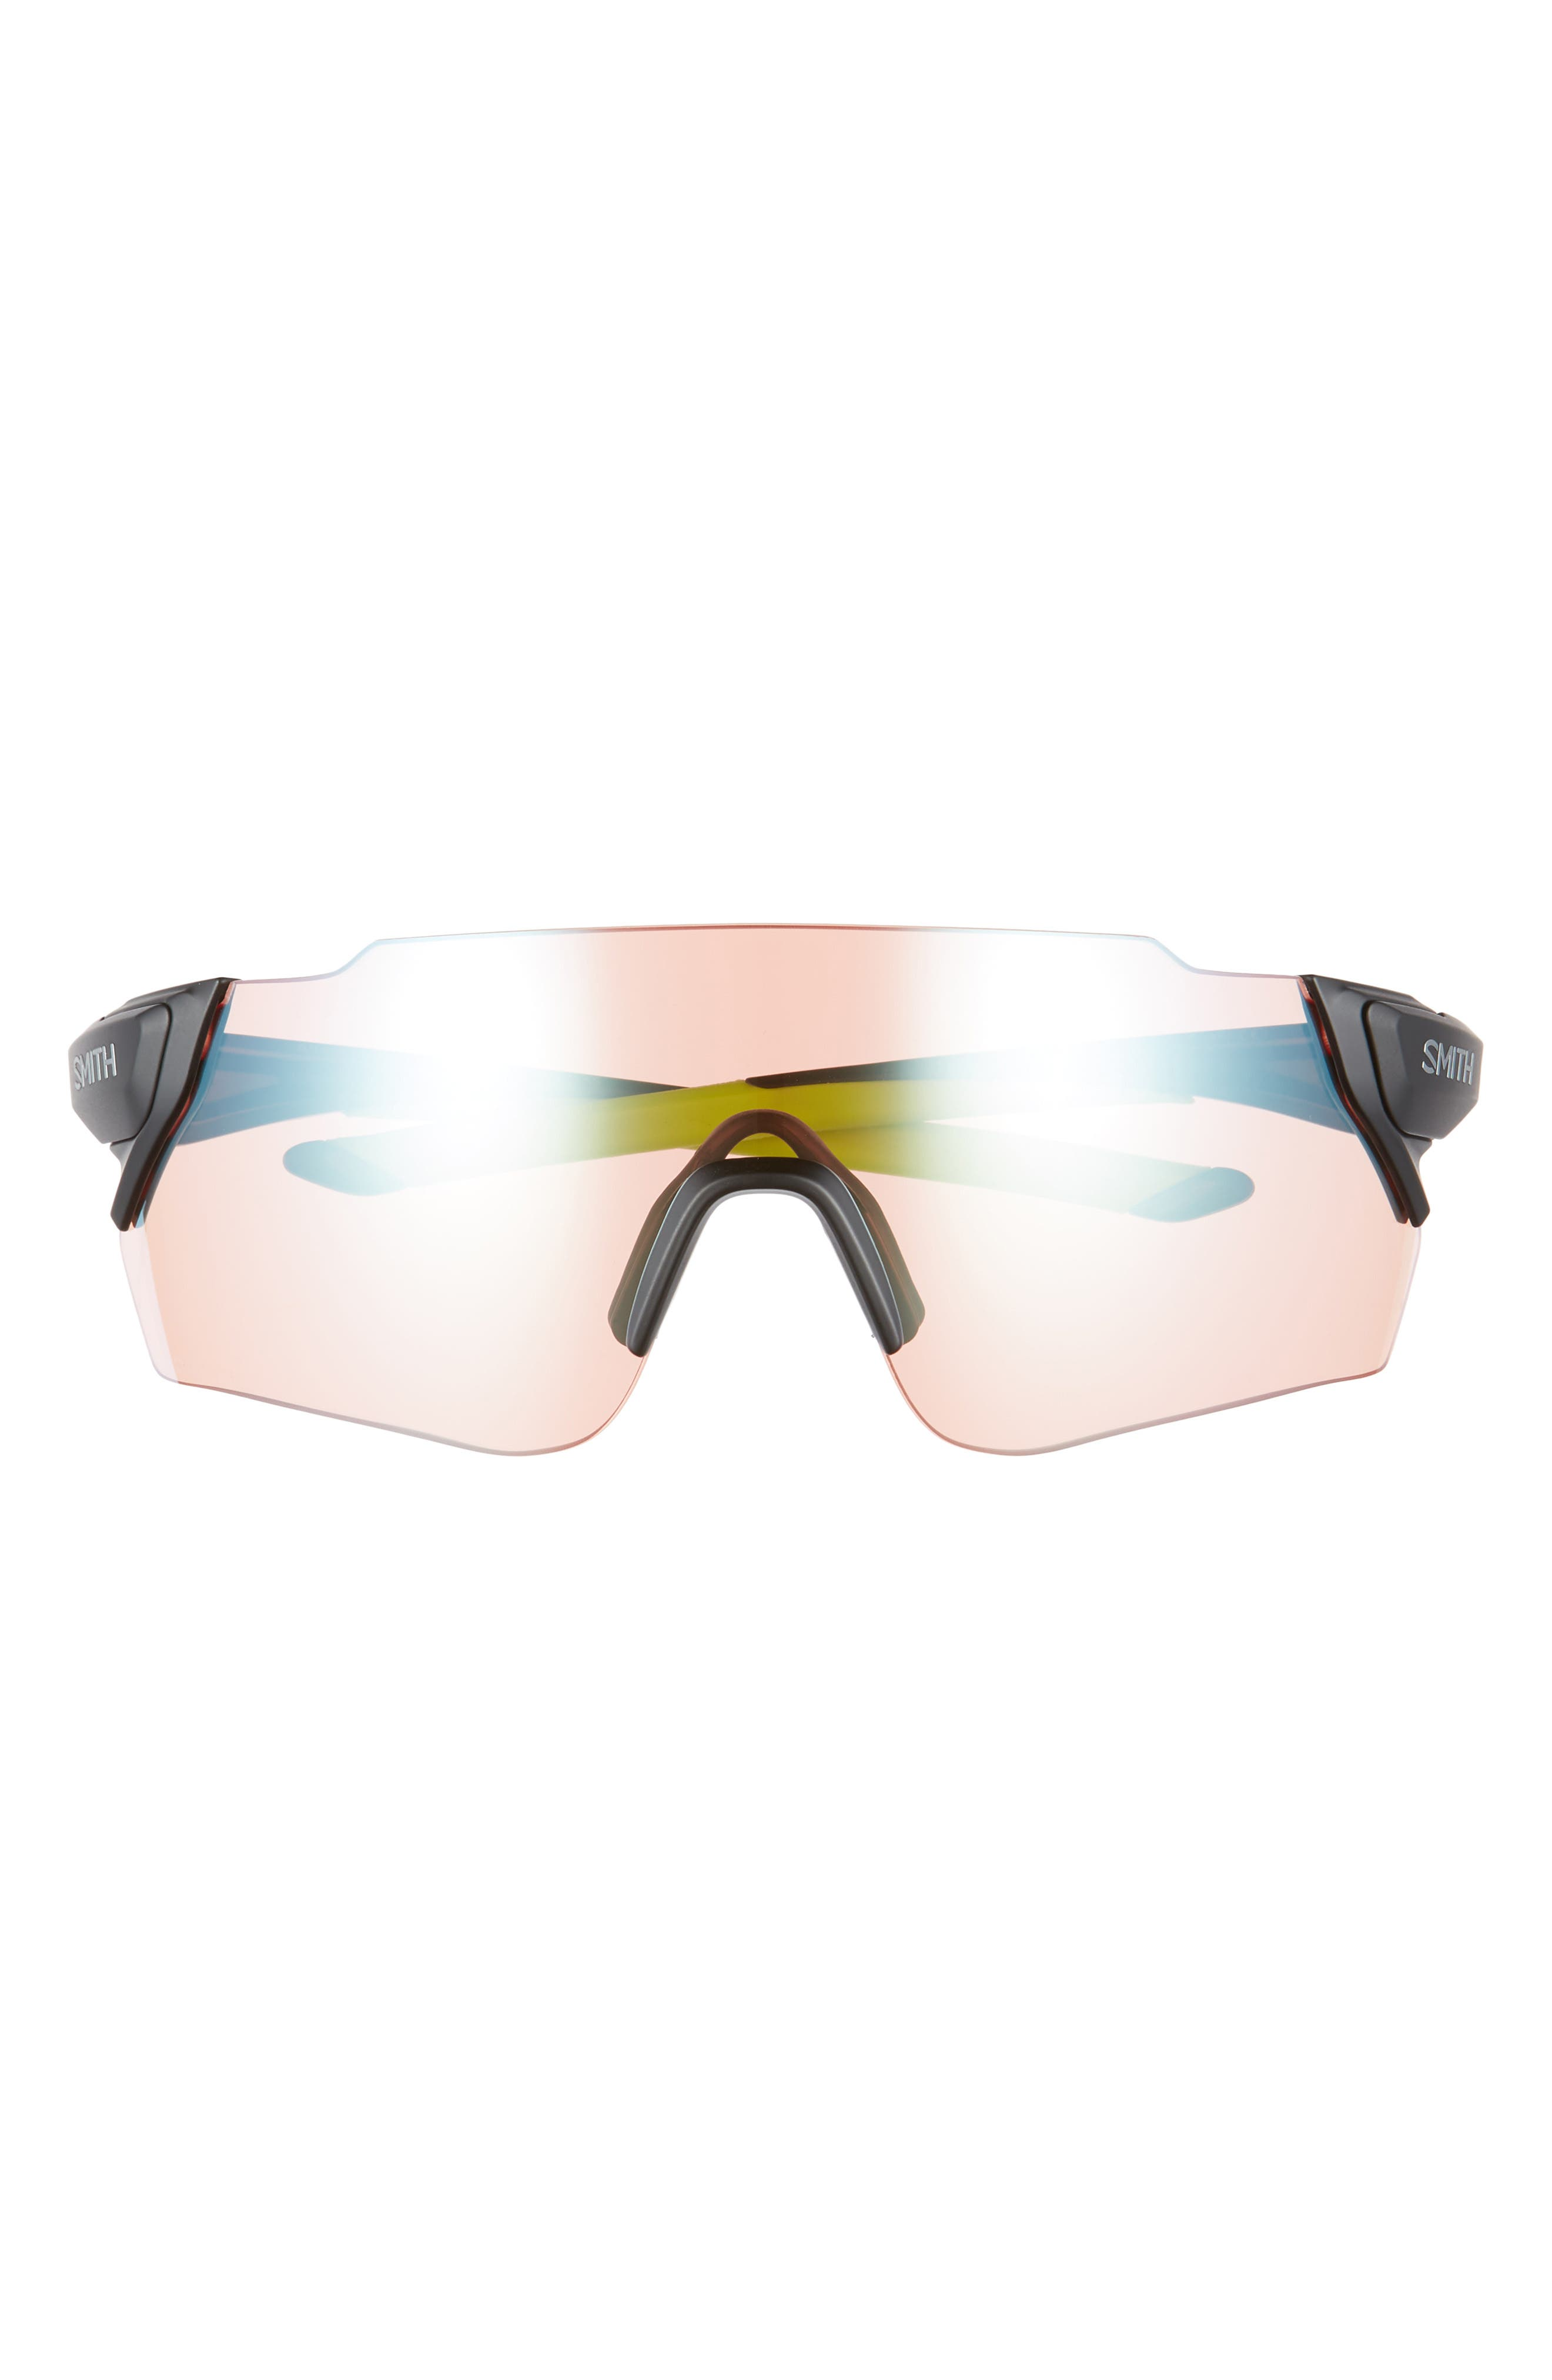 Attack Max 130mm ChromaPop<sup>™</sup> Shield Sunglasses,                             Alternate thumbnail 3, color,                             MATTE BLACK REACTOR